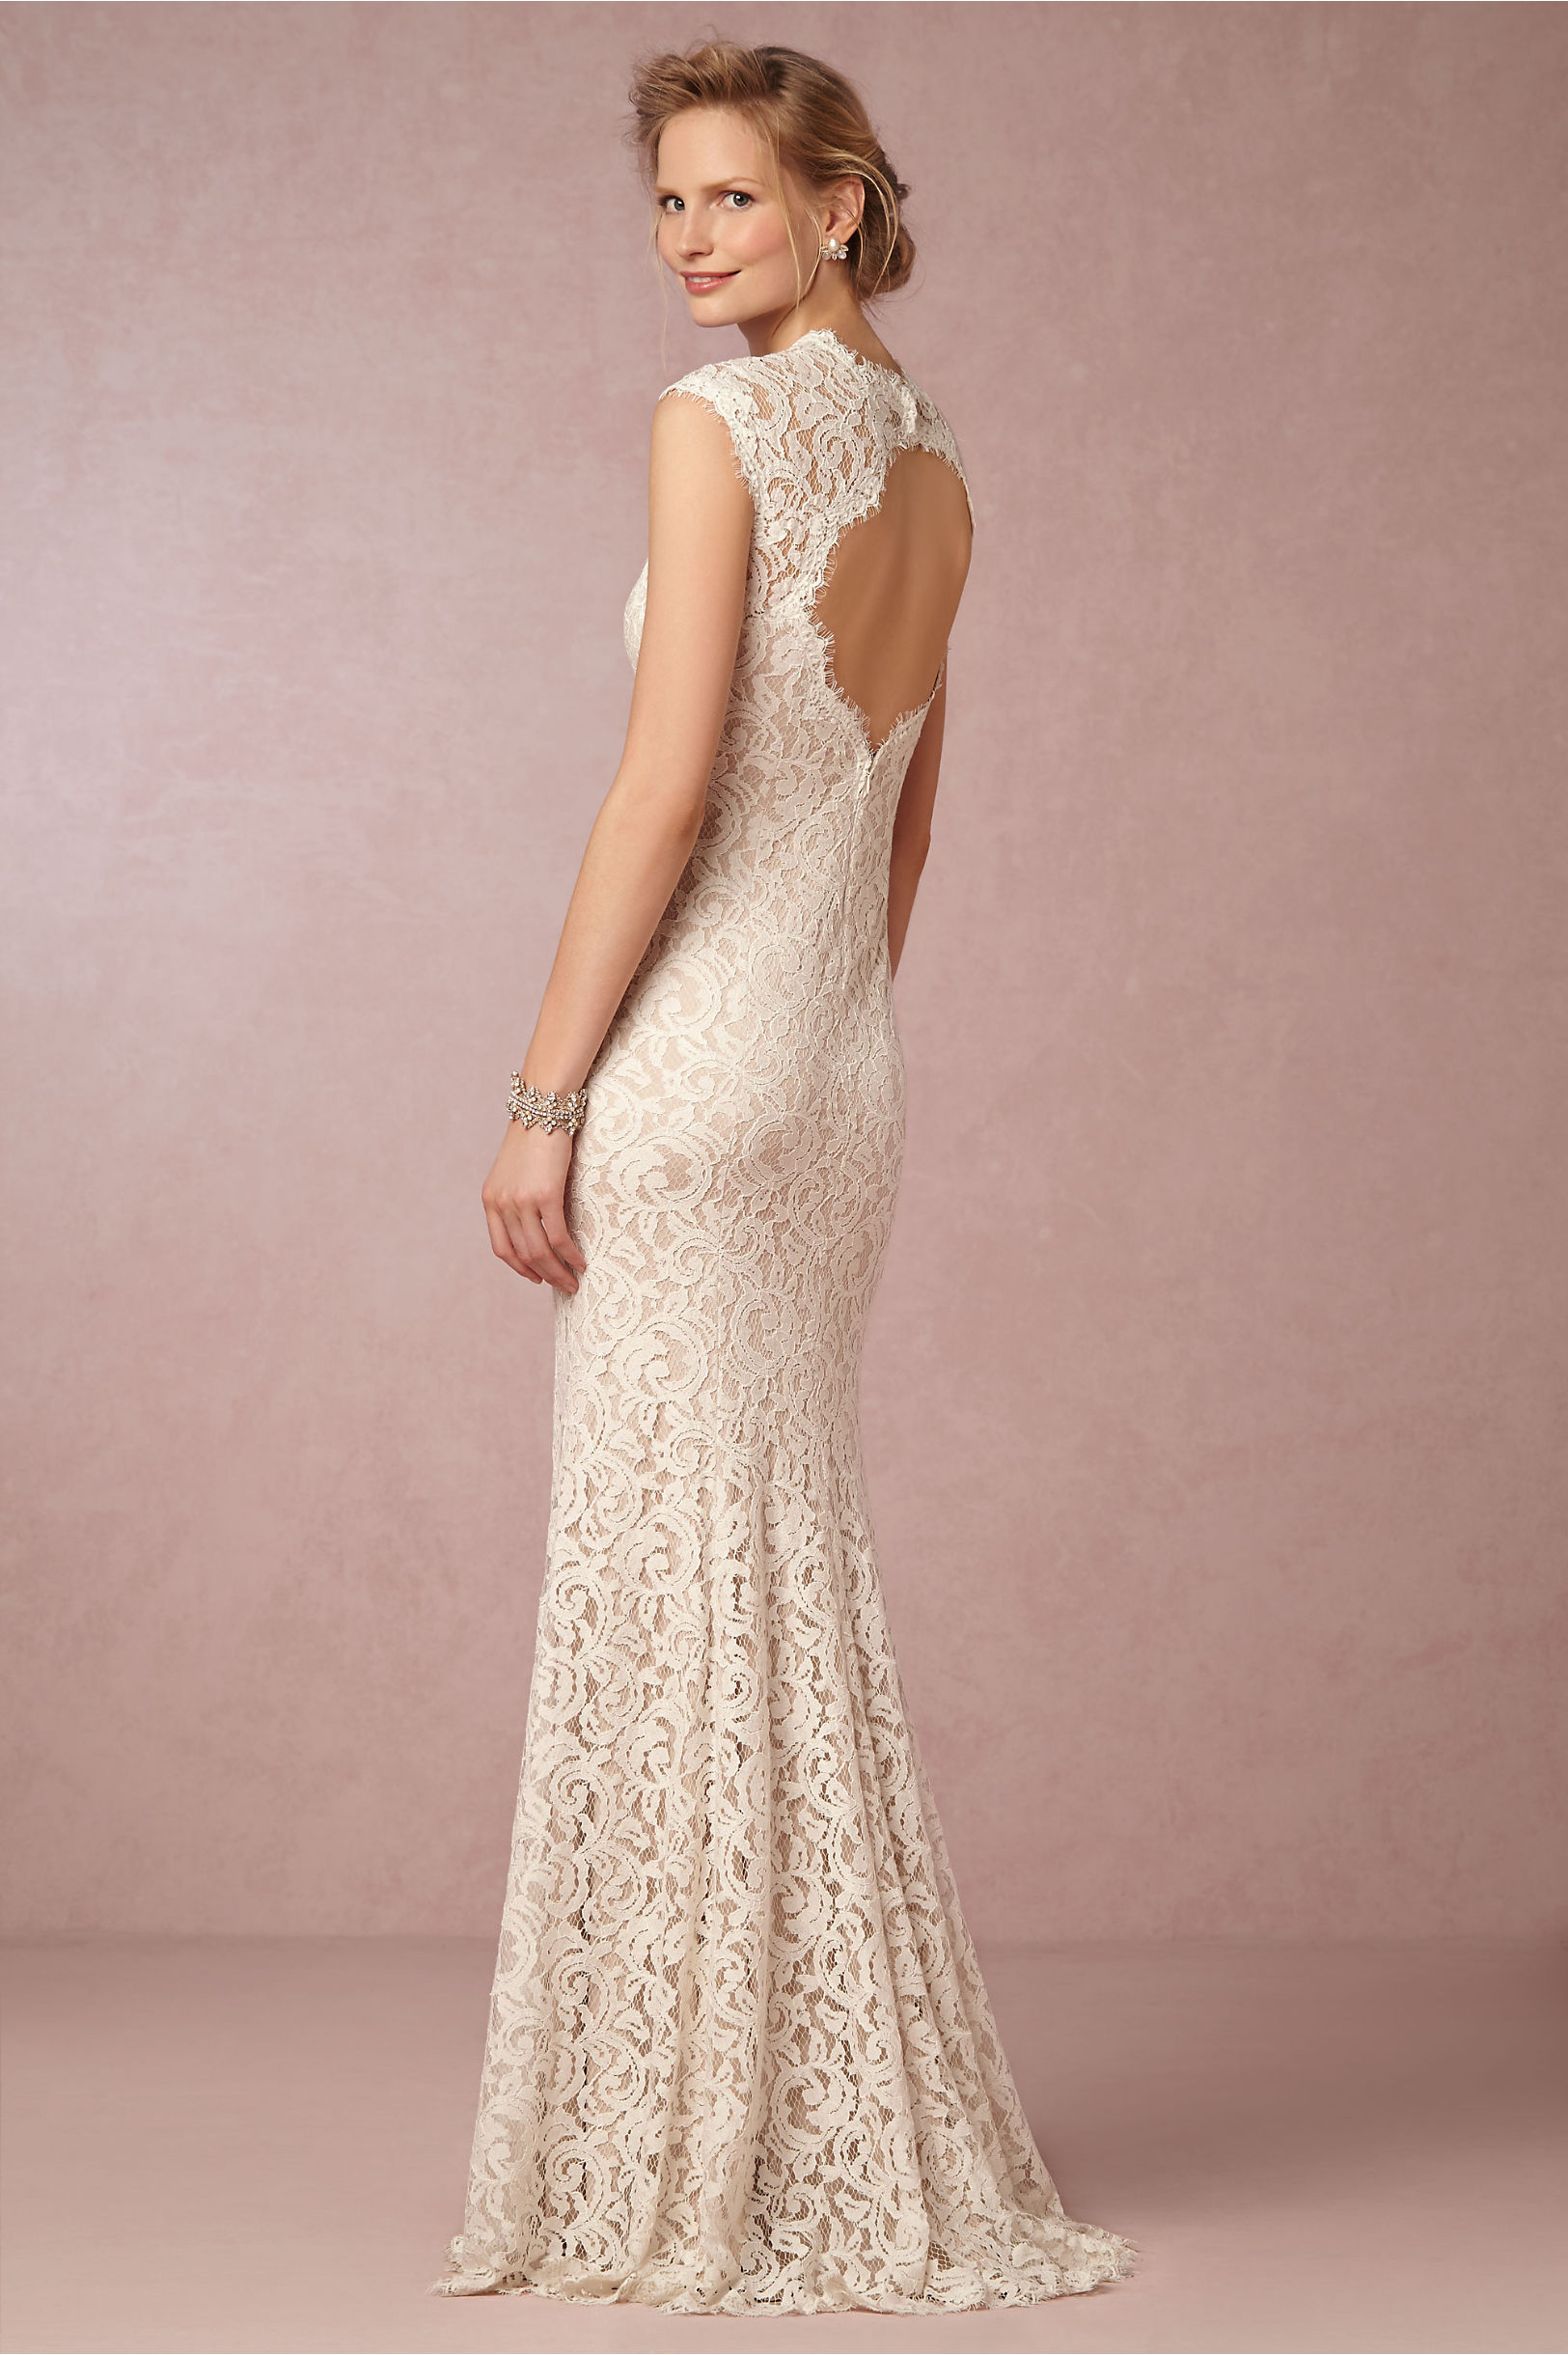 Marivana Lace Gown in Bride | BHLDN